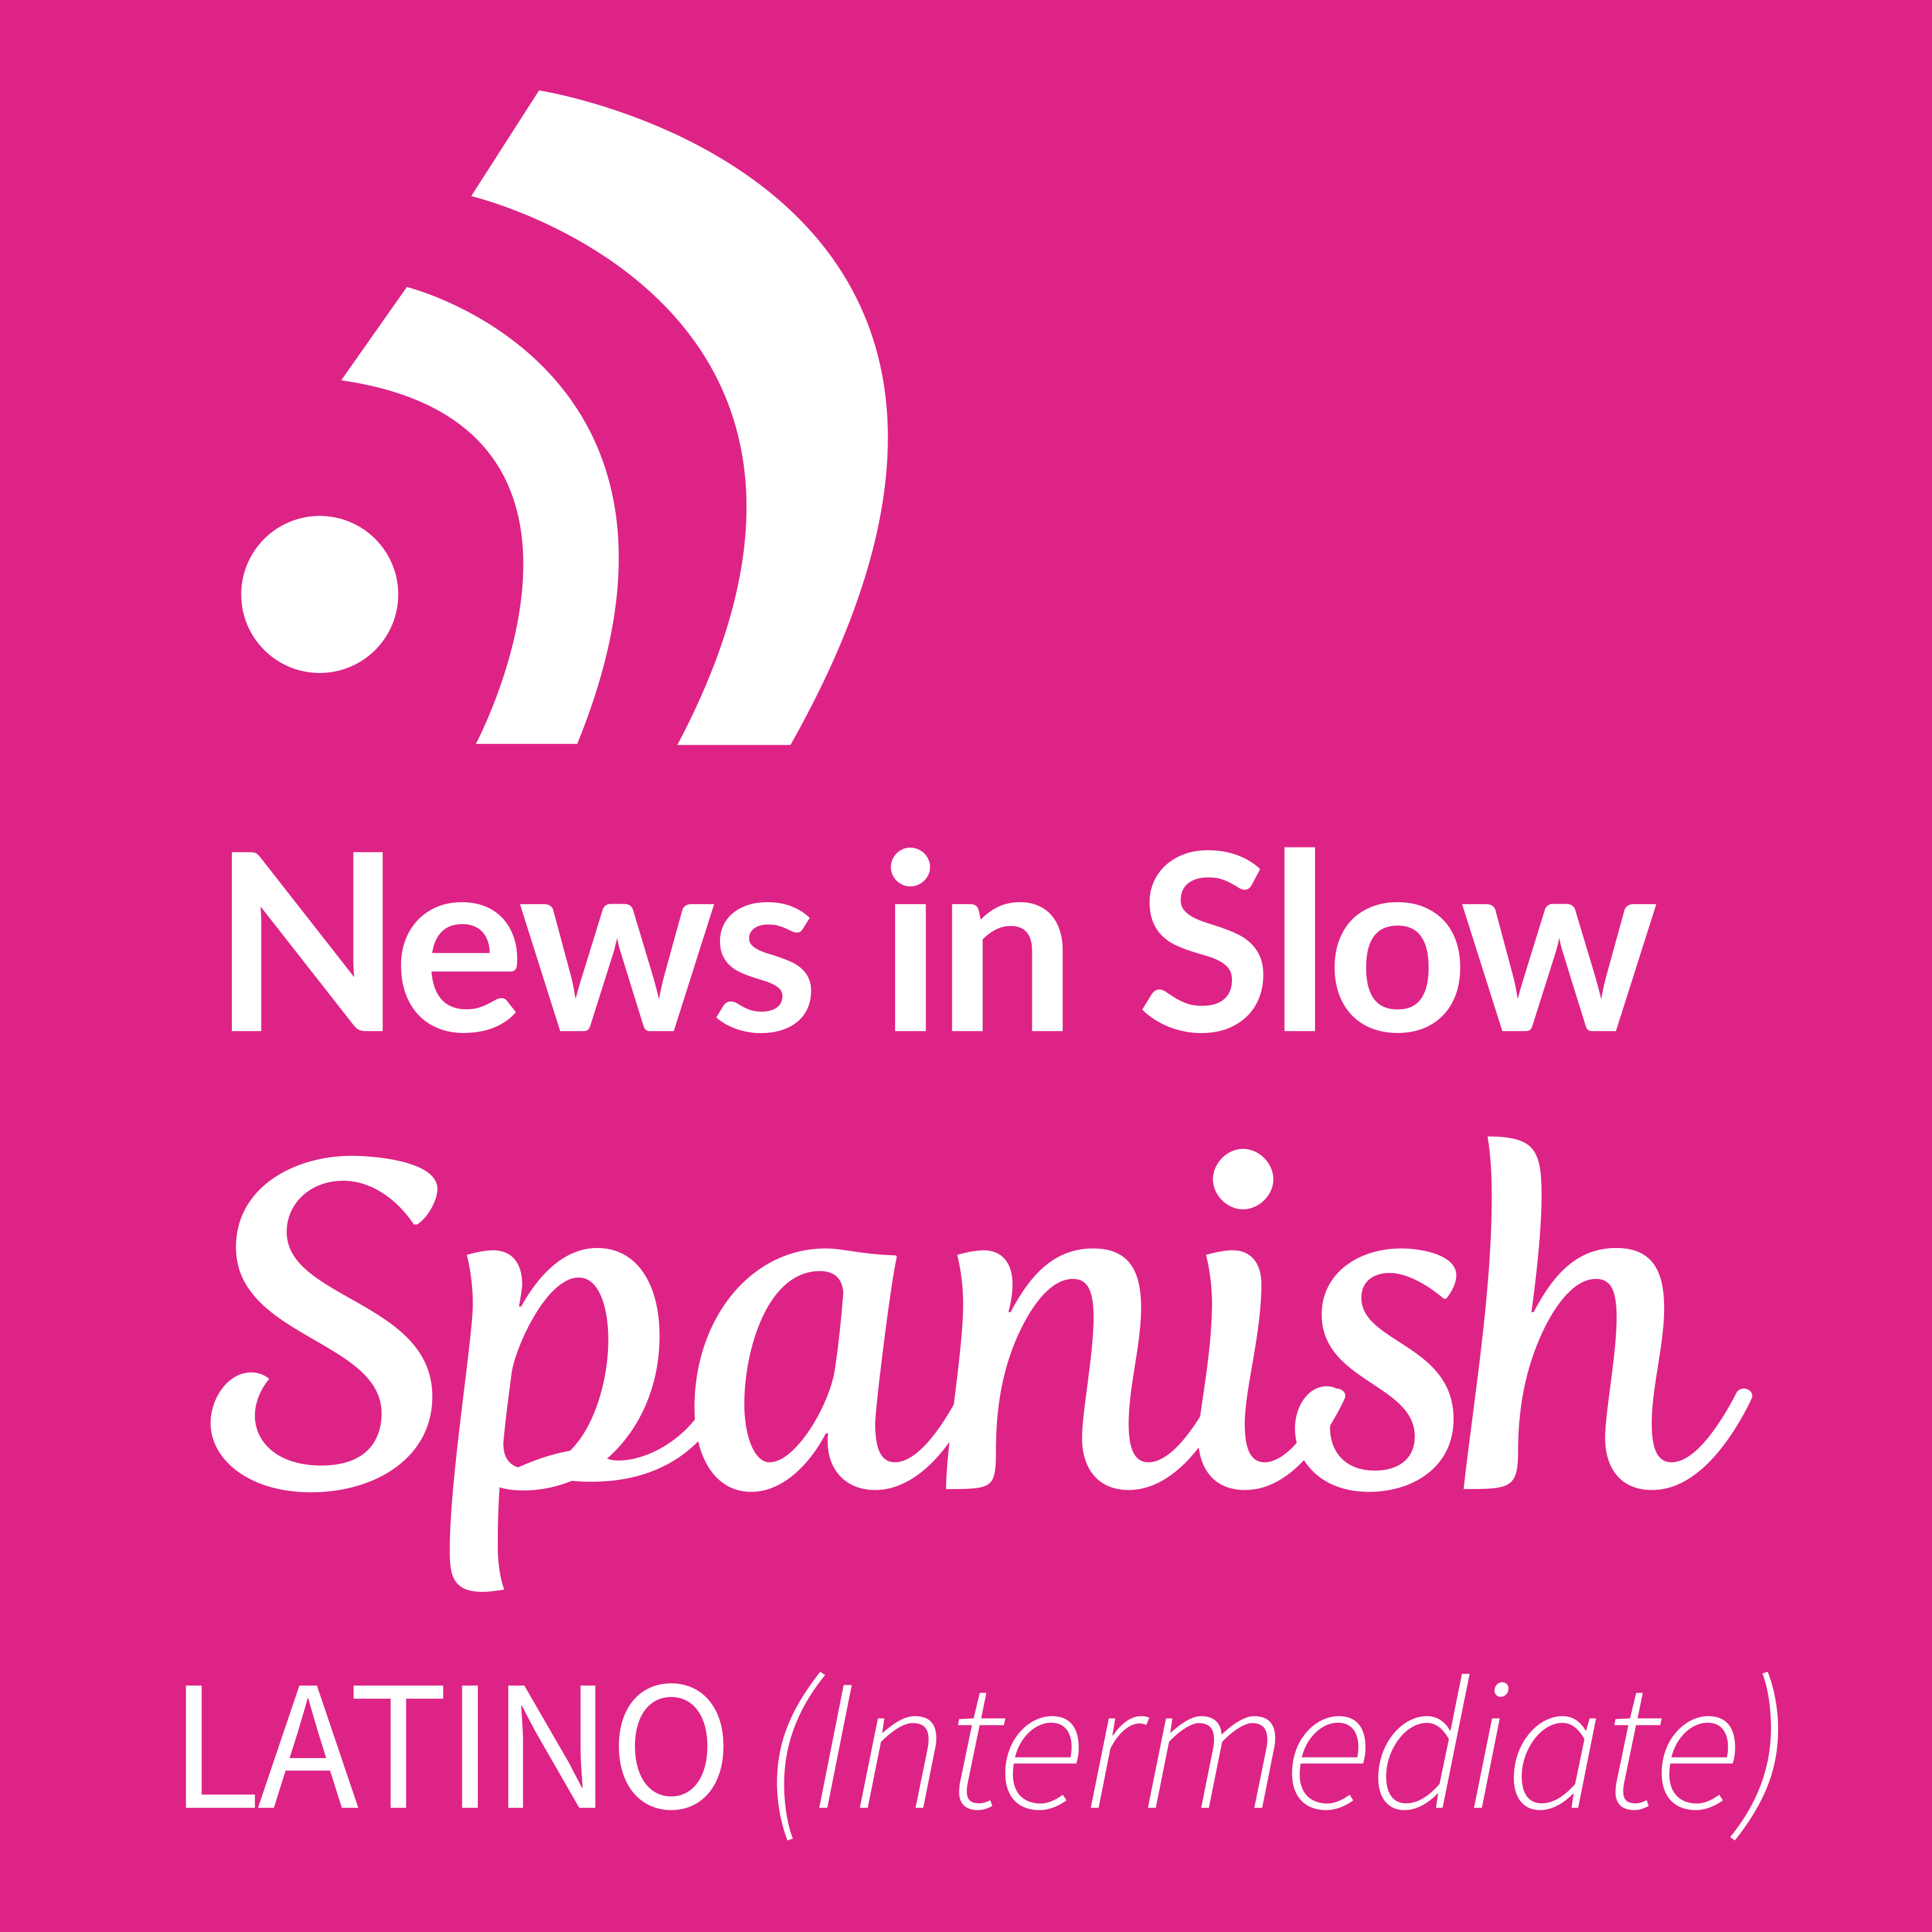 News in Slow Spanish Latino - # 160 - Language learning in the context of current events